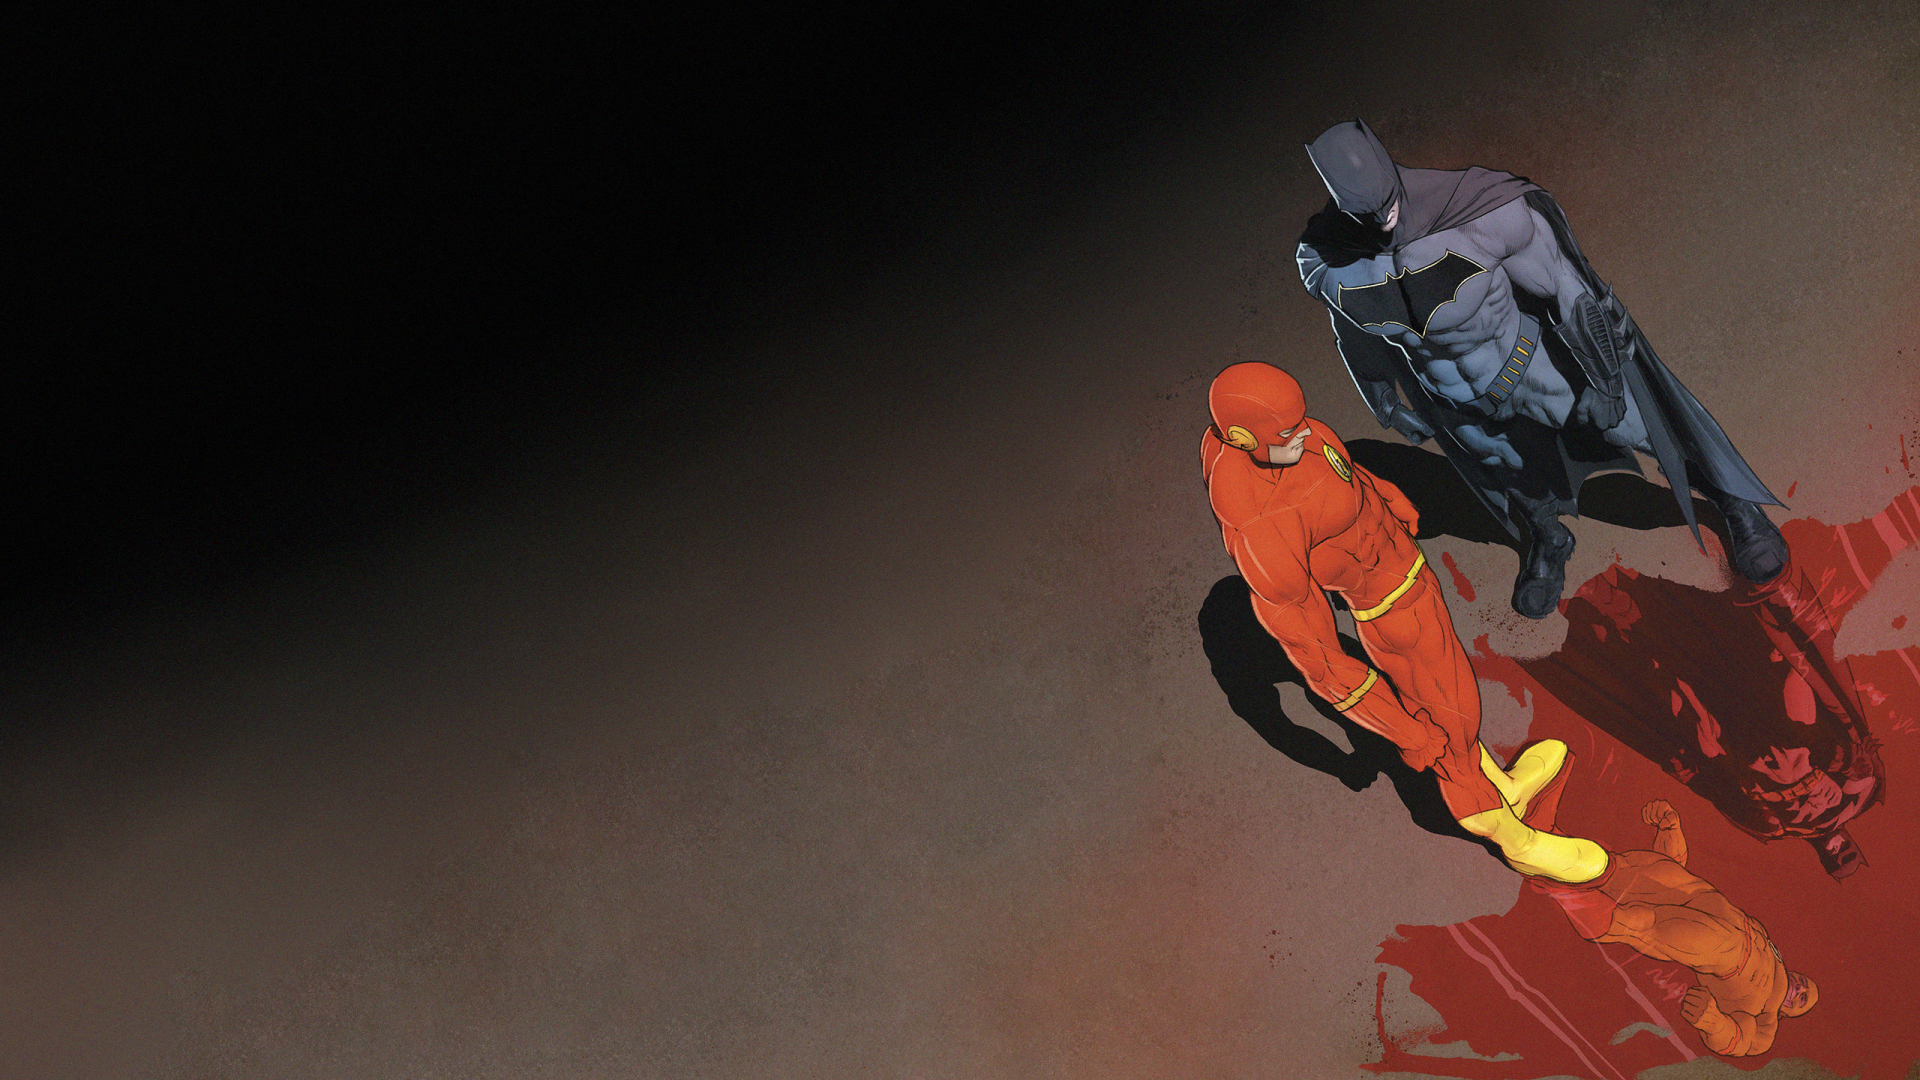 The Flash Background Hd Posted By Christopher Thompson